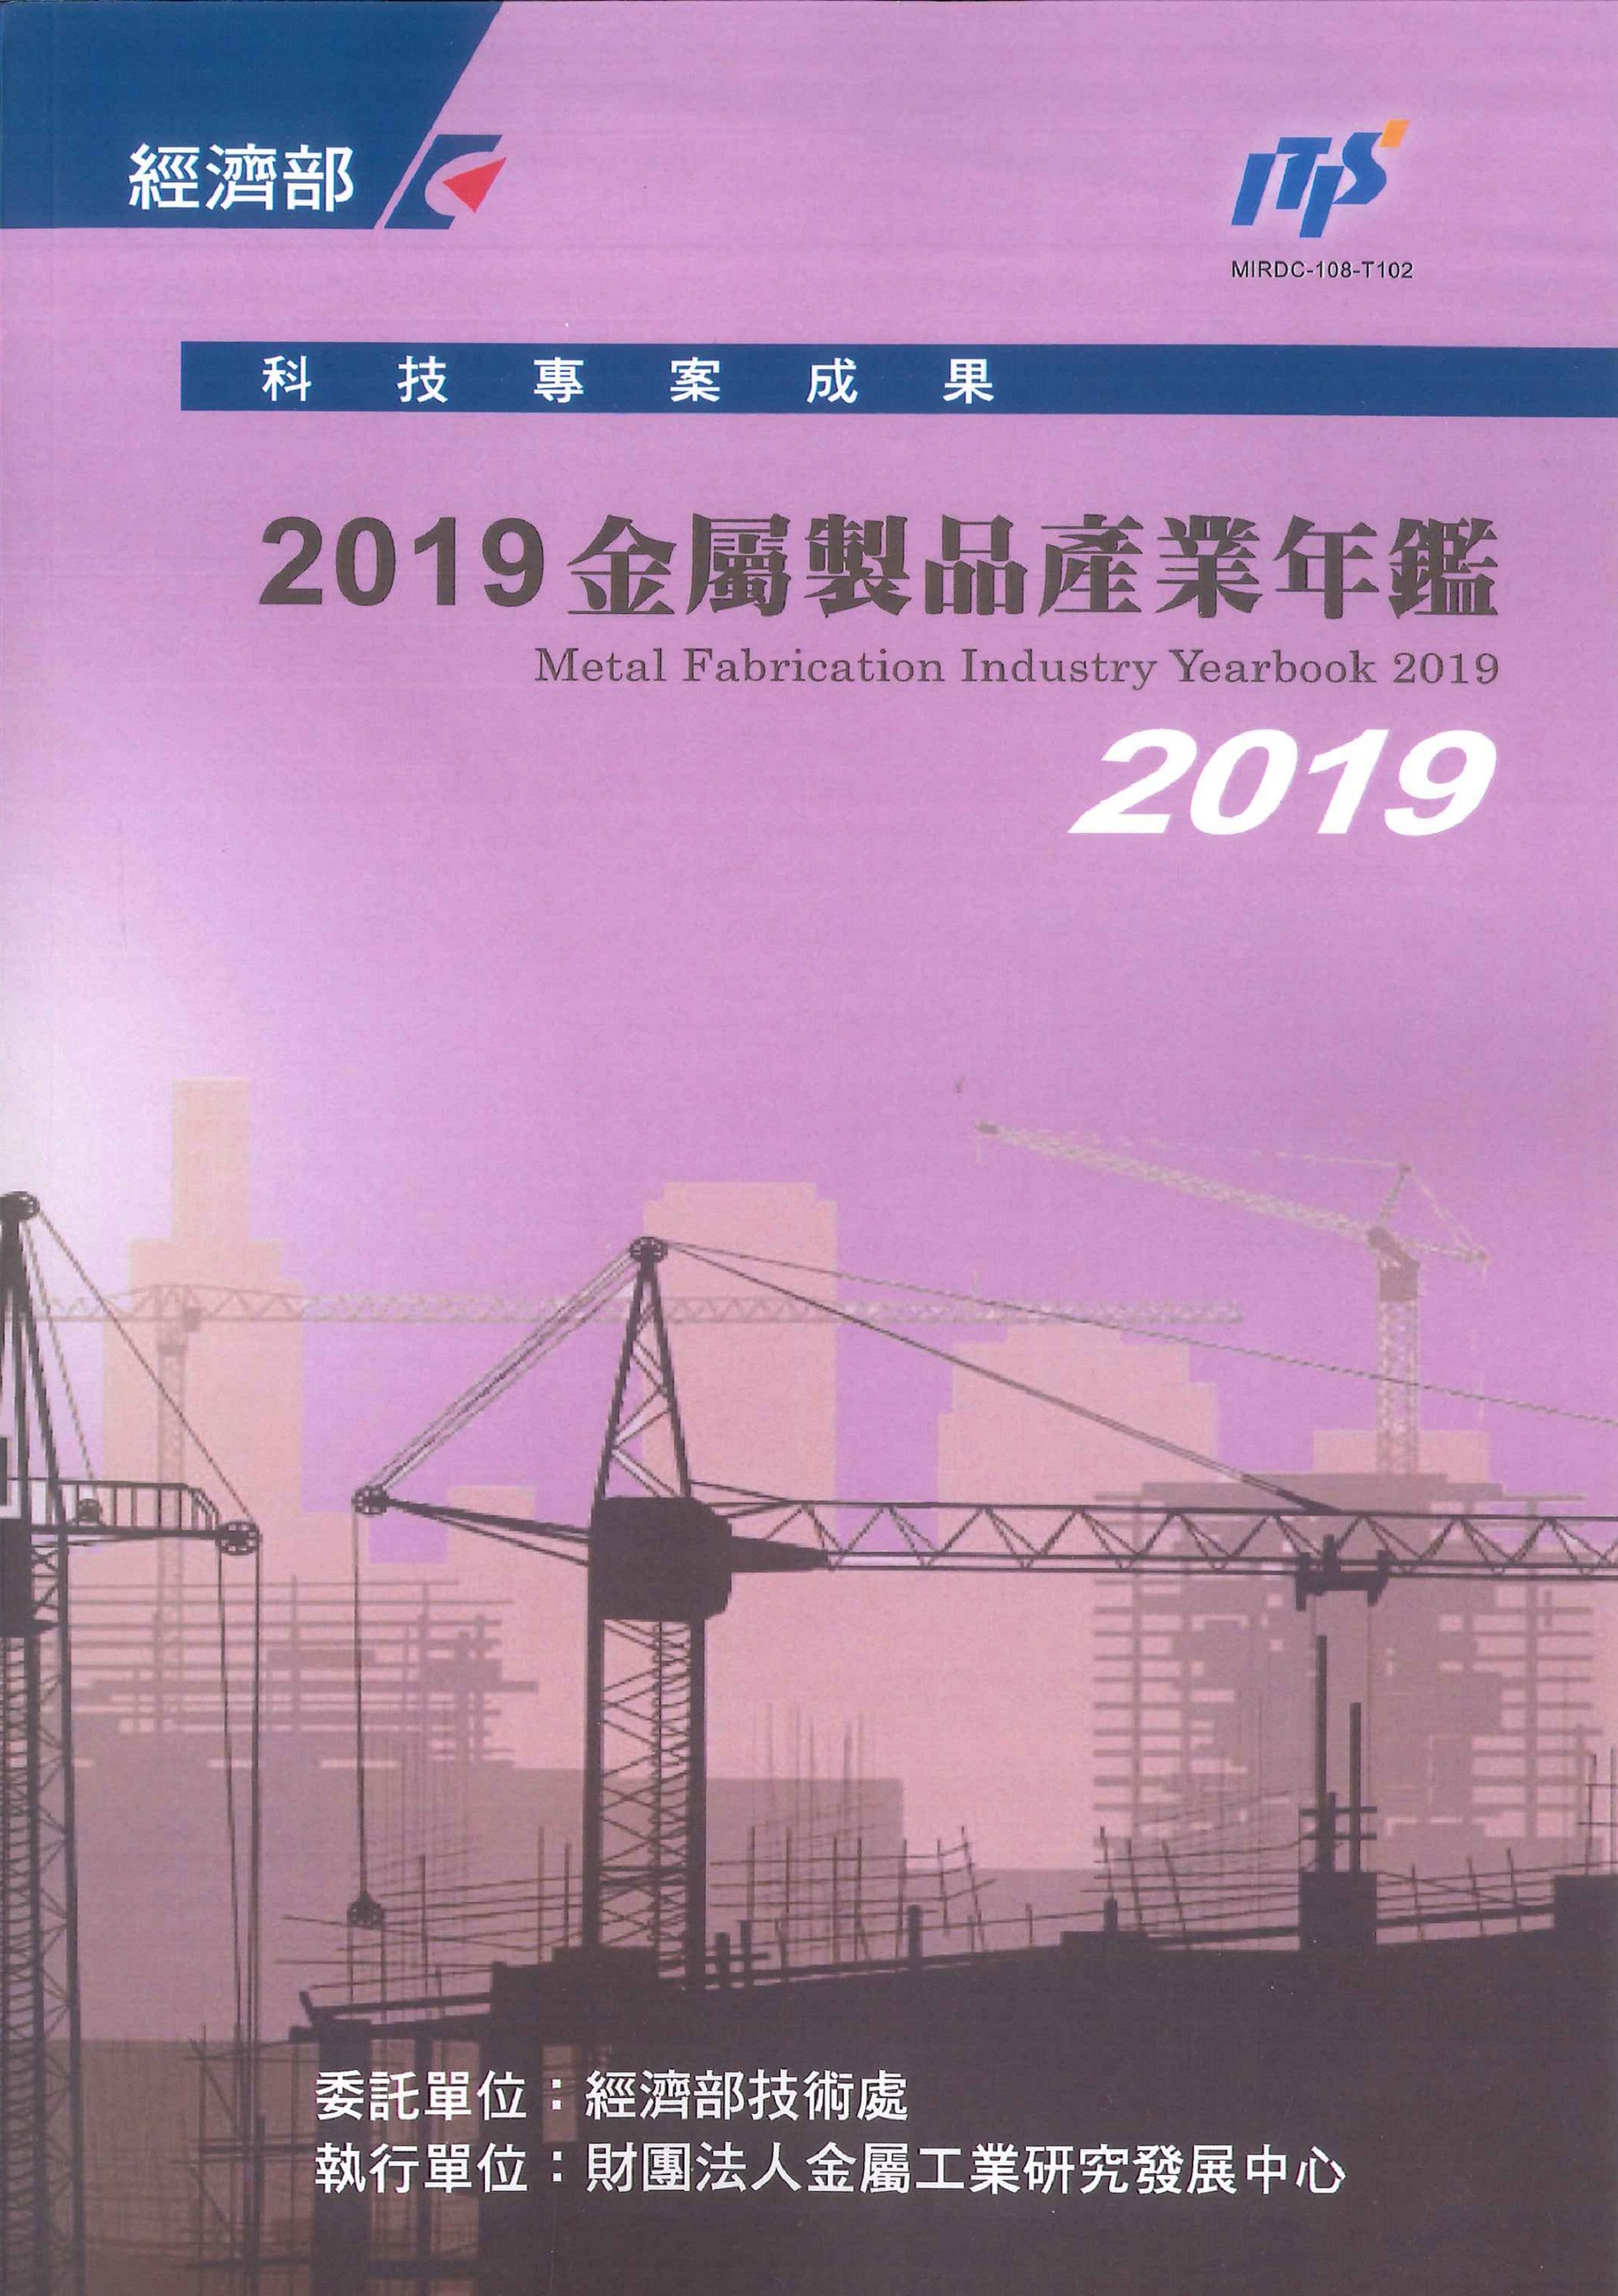 金屬製品產業年鑑=Metal fabrication industry yearbook